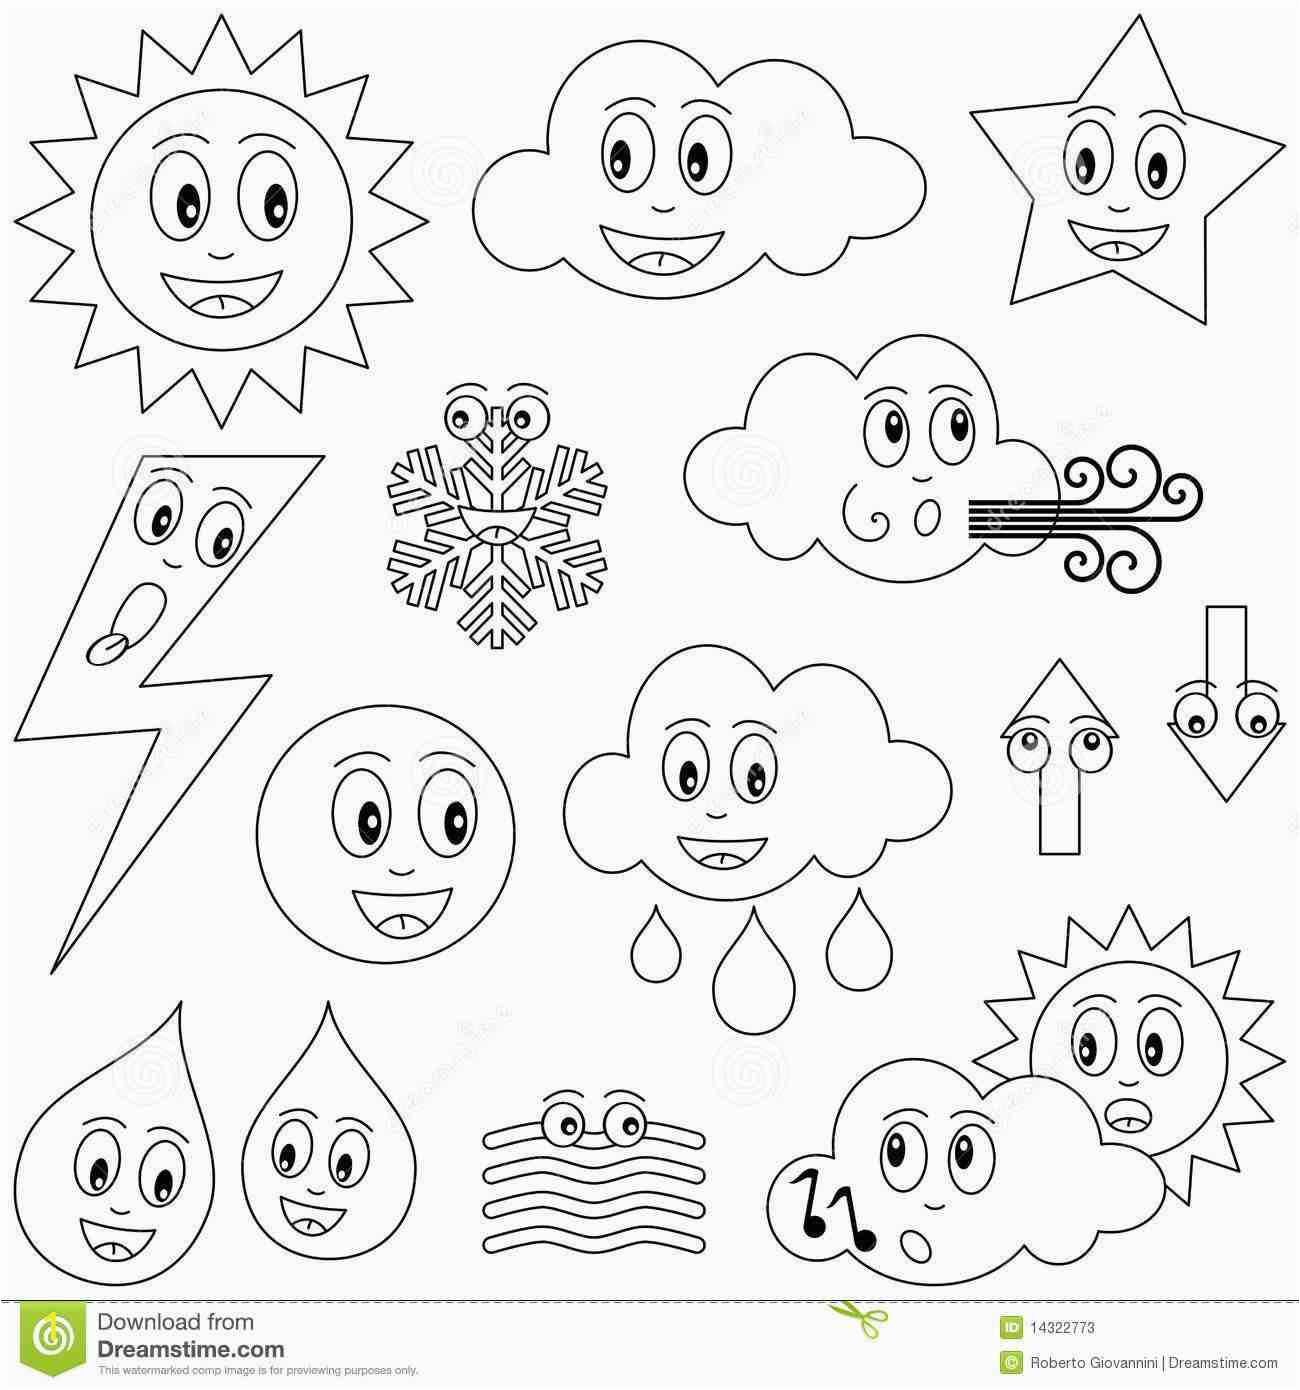 free coloring pages of weather weather coloring pages coloring pages to and print coloring weather free pages of